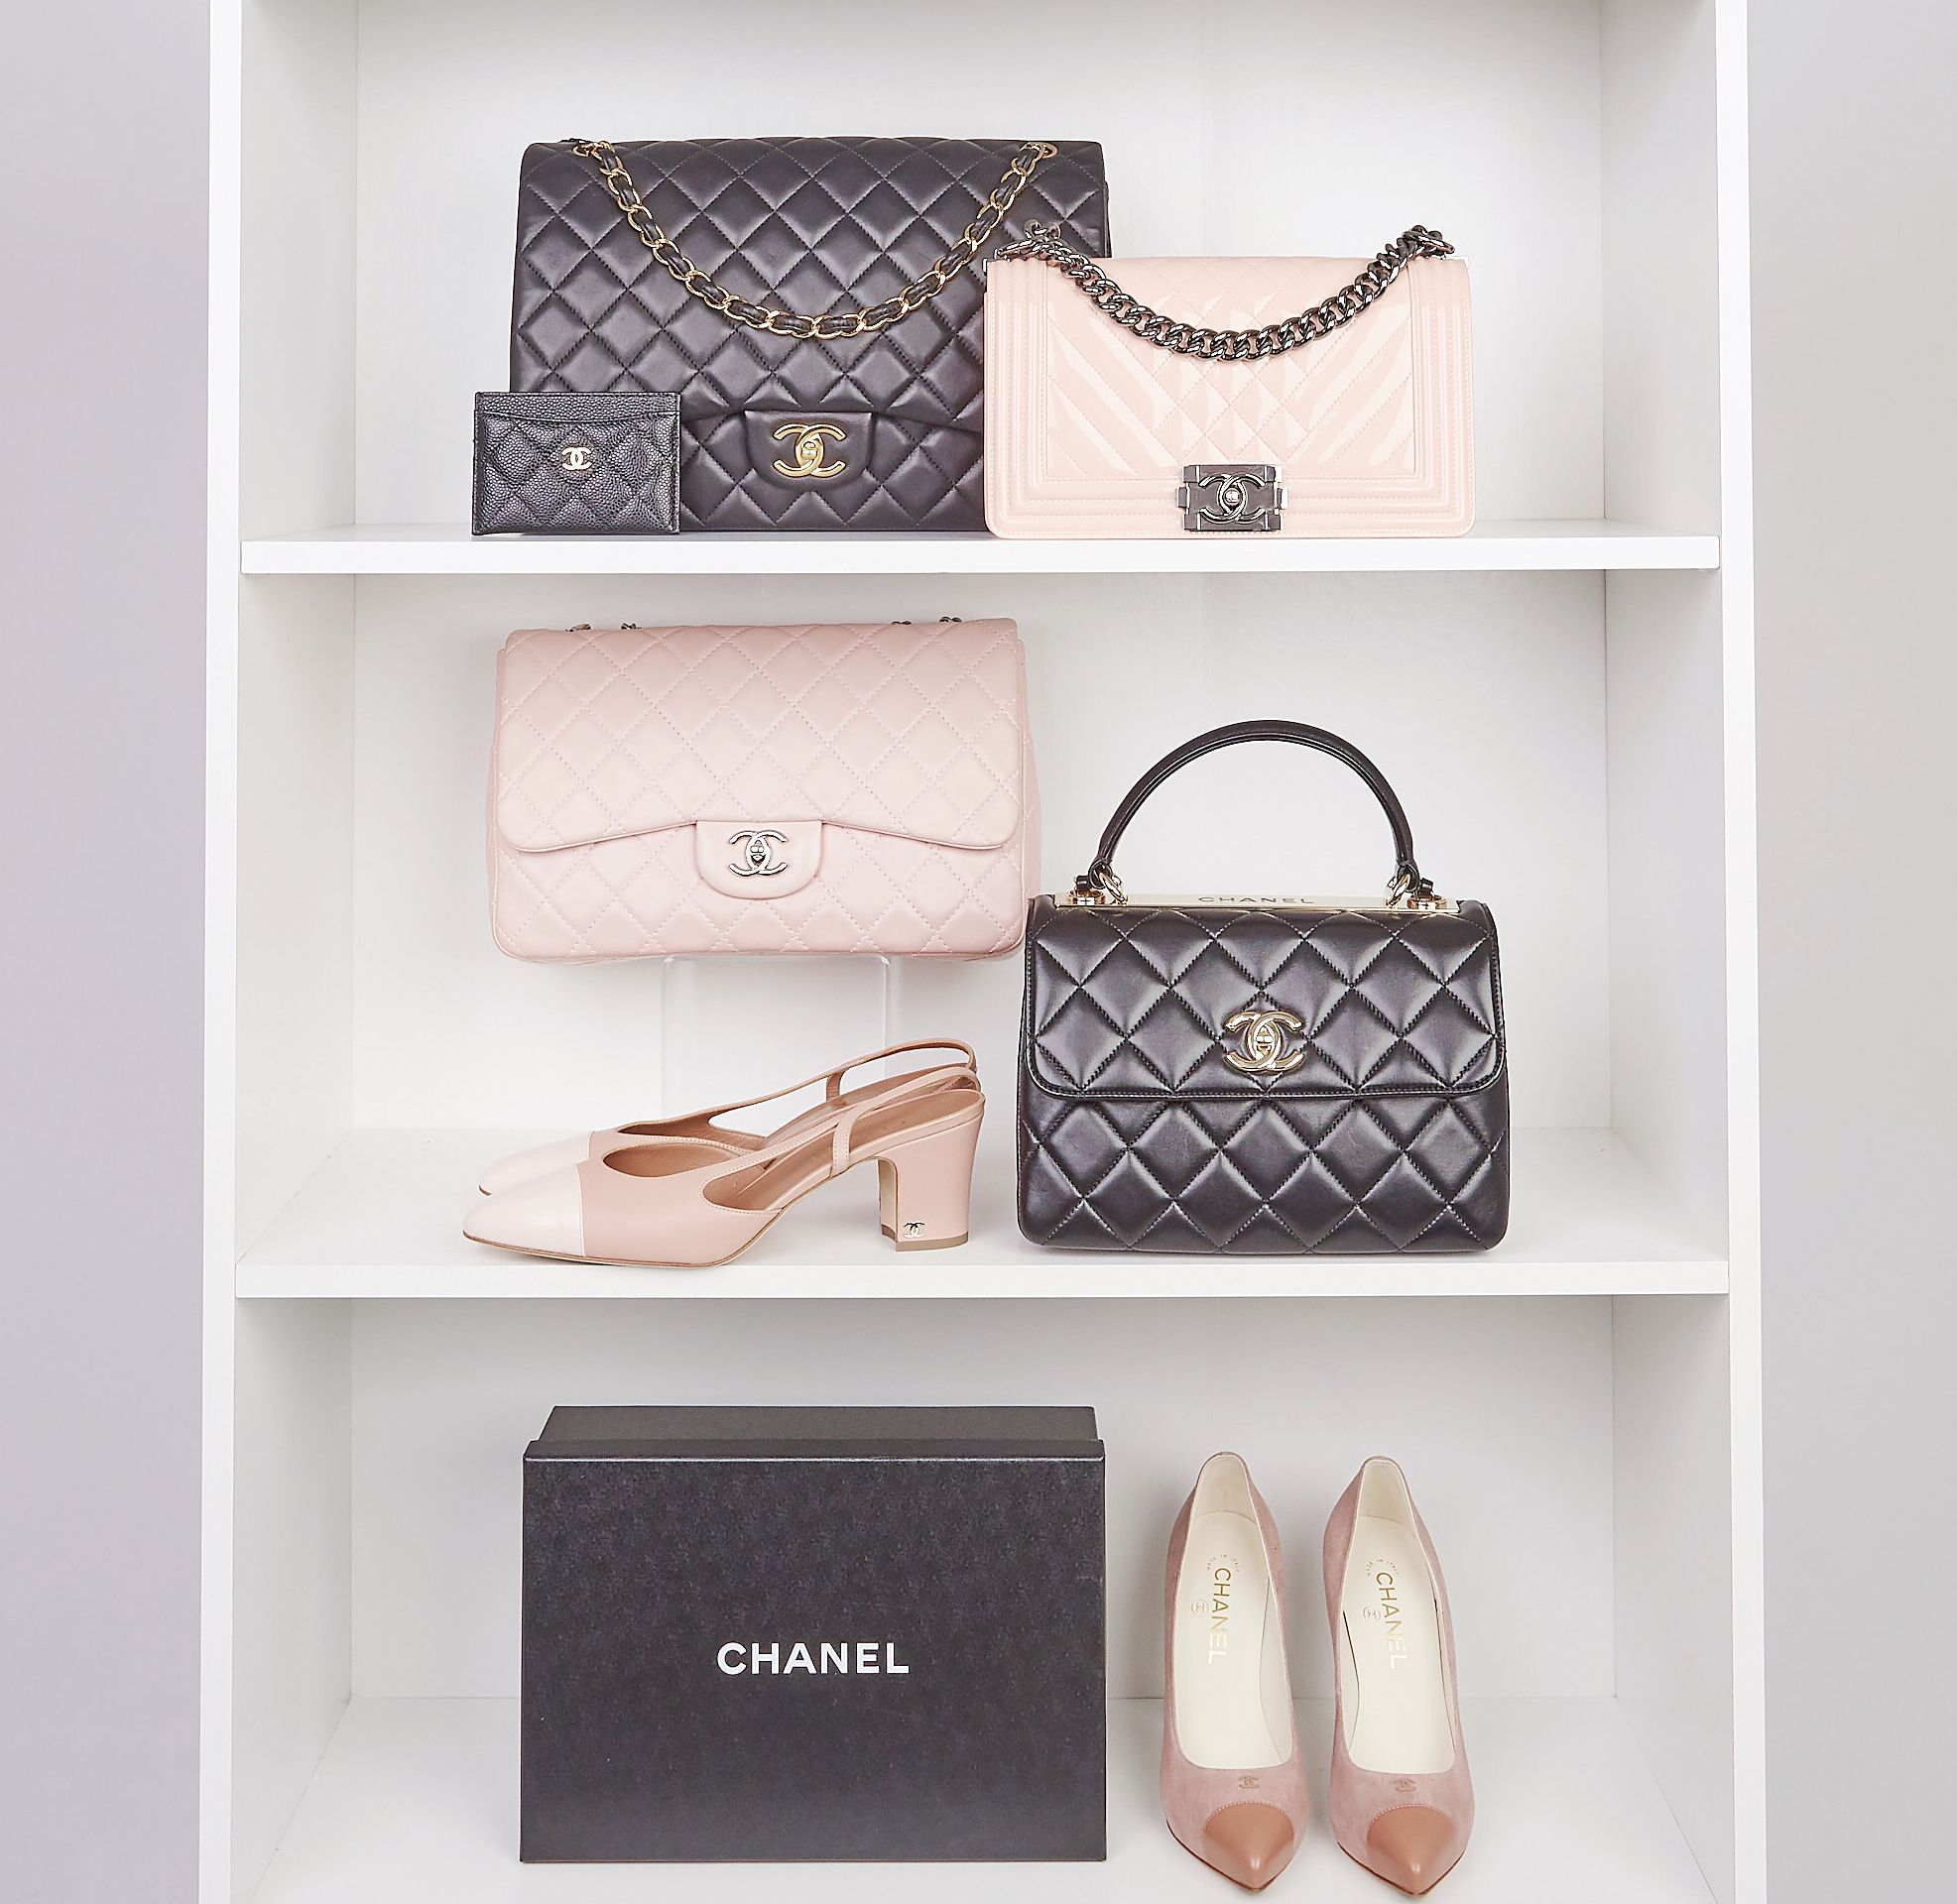 Chanel Shelfie Goals Chanel Chanelclassic Chanelflapbag Chaneltrendy Chanelshoes Shoes Chanelwallet Chanel Flap Bag Luxury Accessories Luxury Items